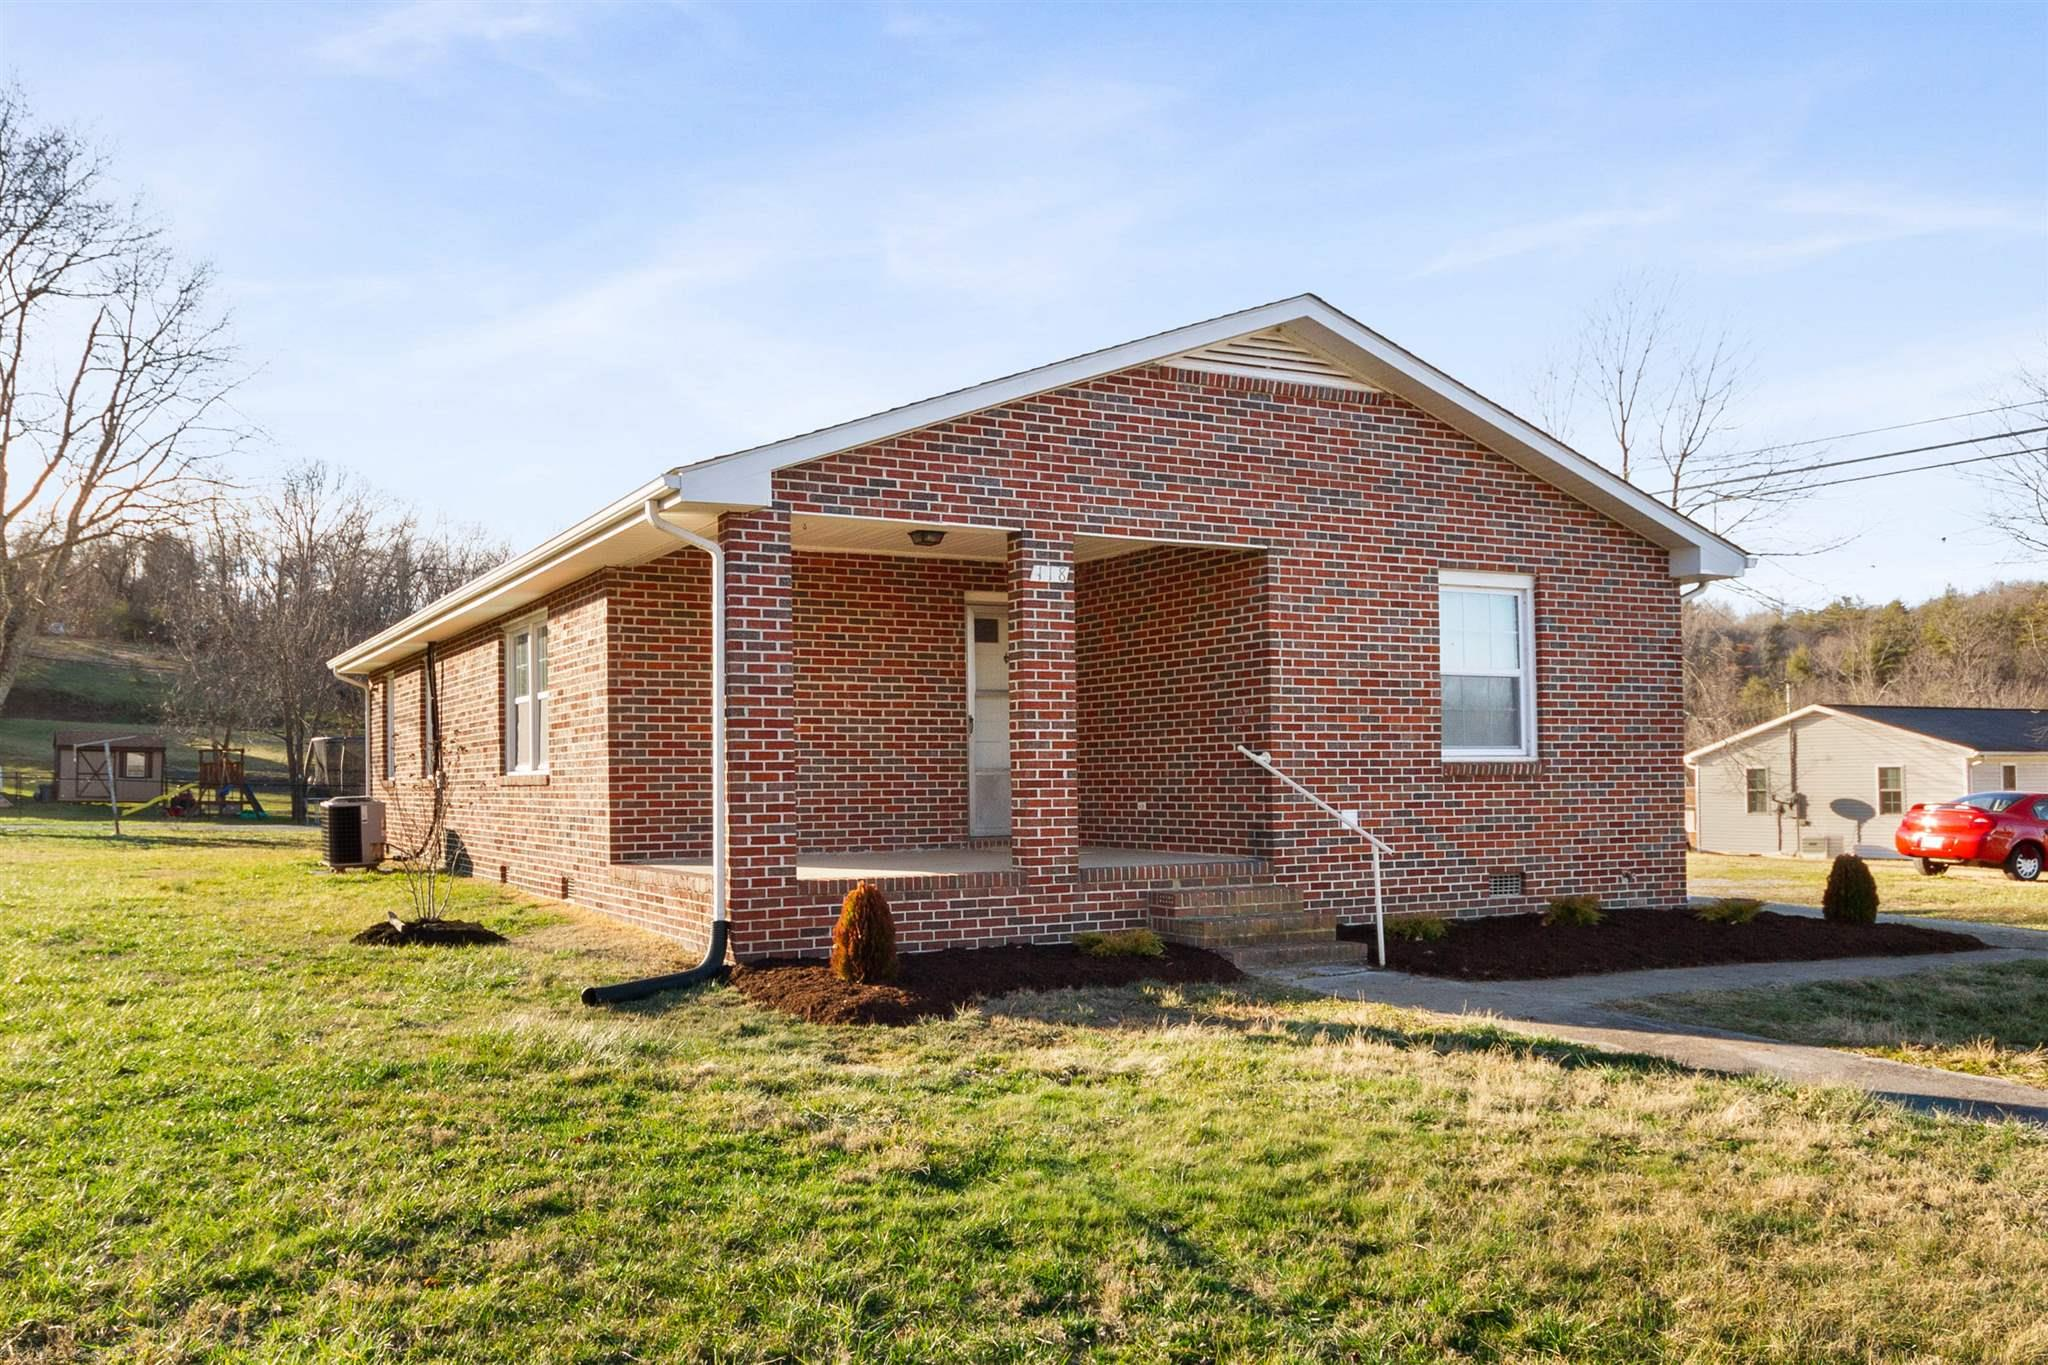 Beautifully renovated all brick home on a nice flat lot.  This house has been completely updated, new kitchen, baths, drywall, flooring and more.  This house is truly move in ready!  So much to offer, schedule your showing today.